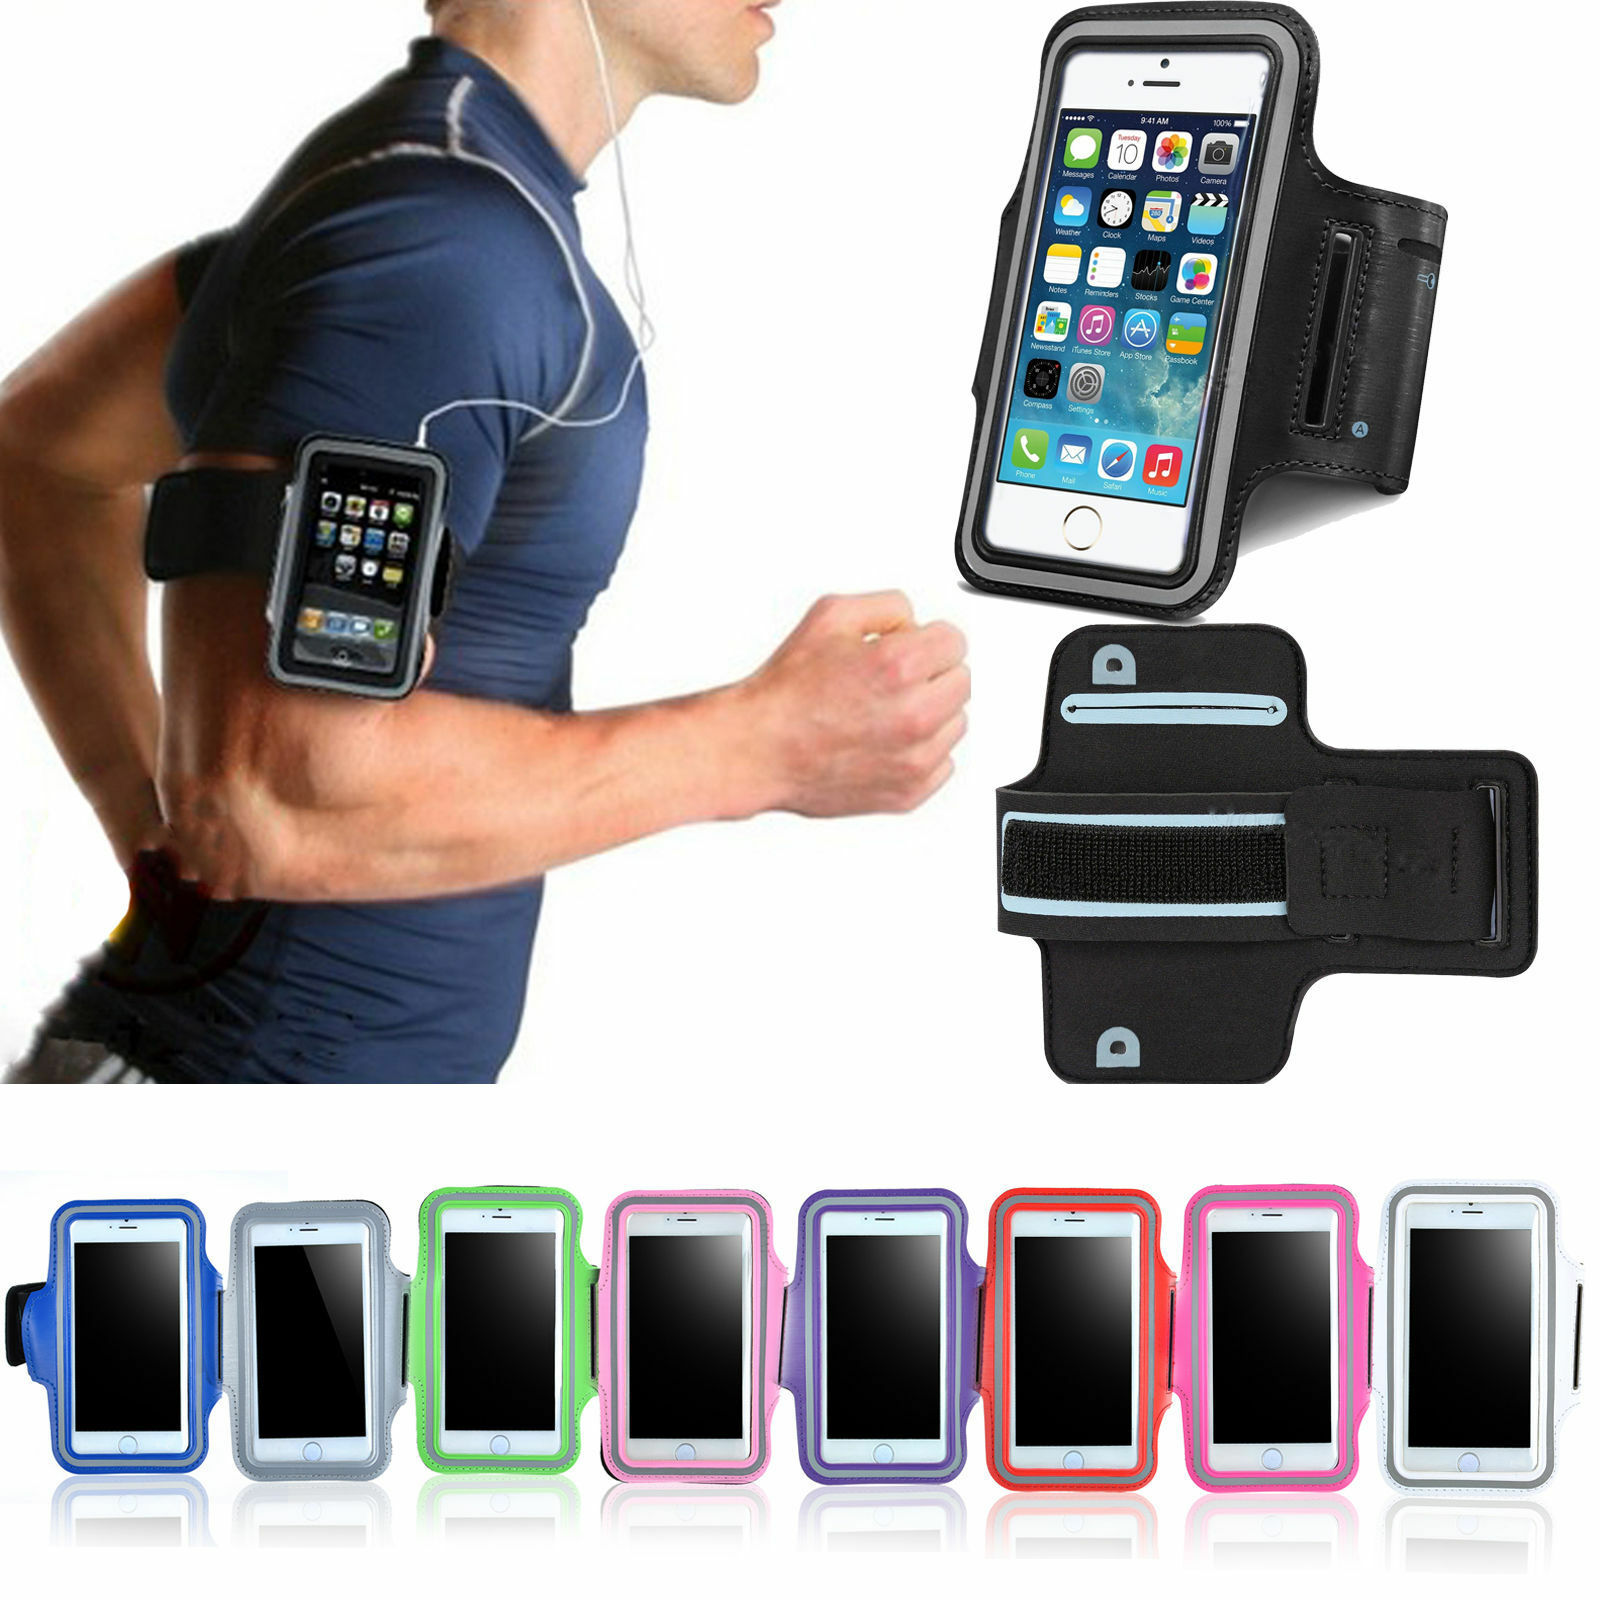 on sale cb223 3a849 Details about Fr iPhone 8 7 Plus 6 6S Armband Case Sports GYM Running  Exercise Arm Band Holder